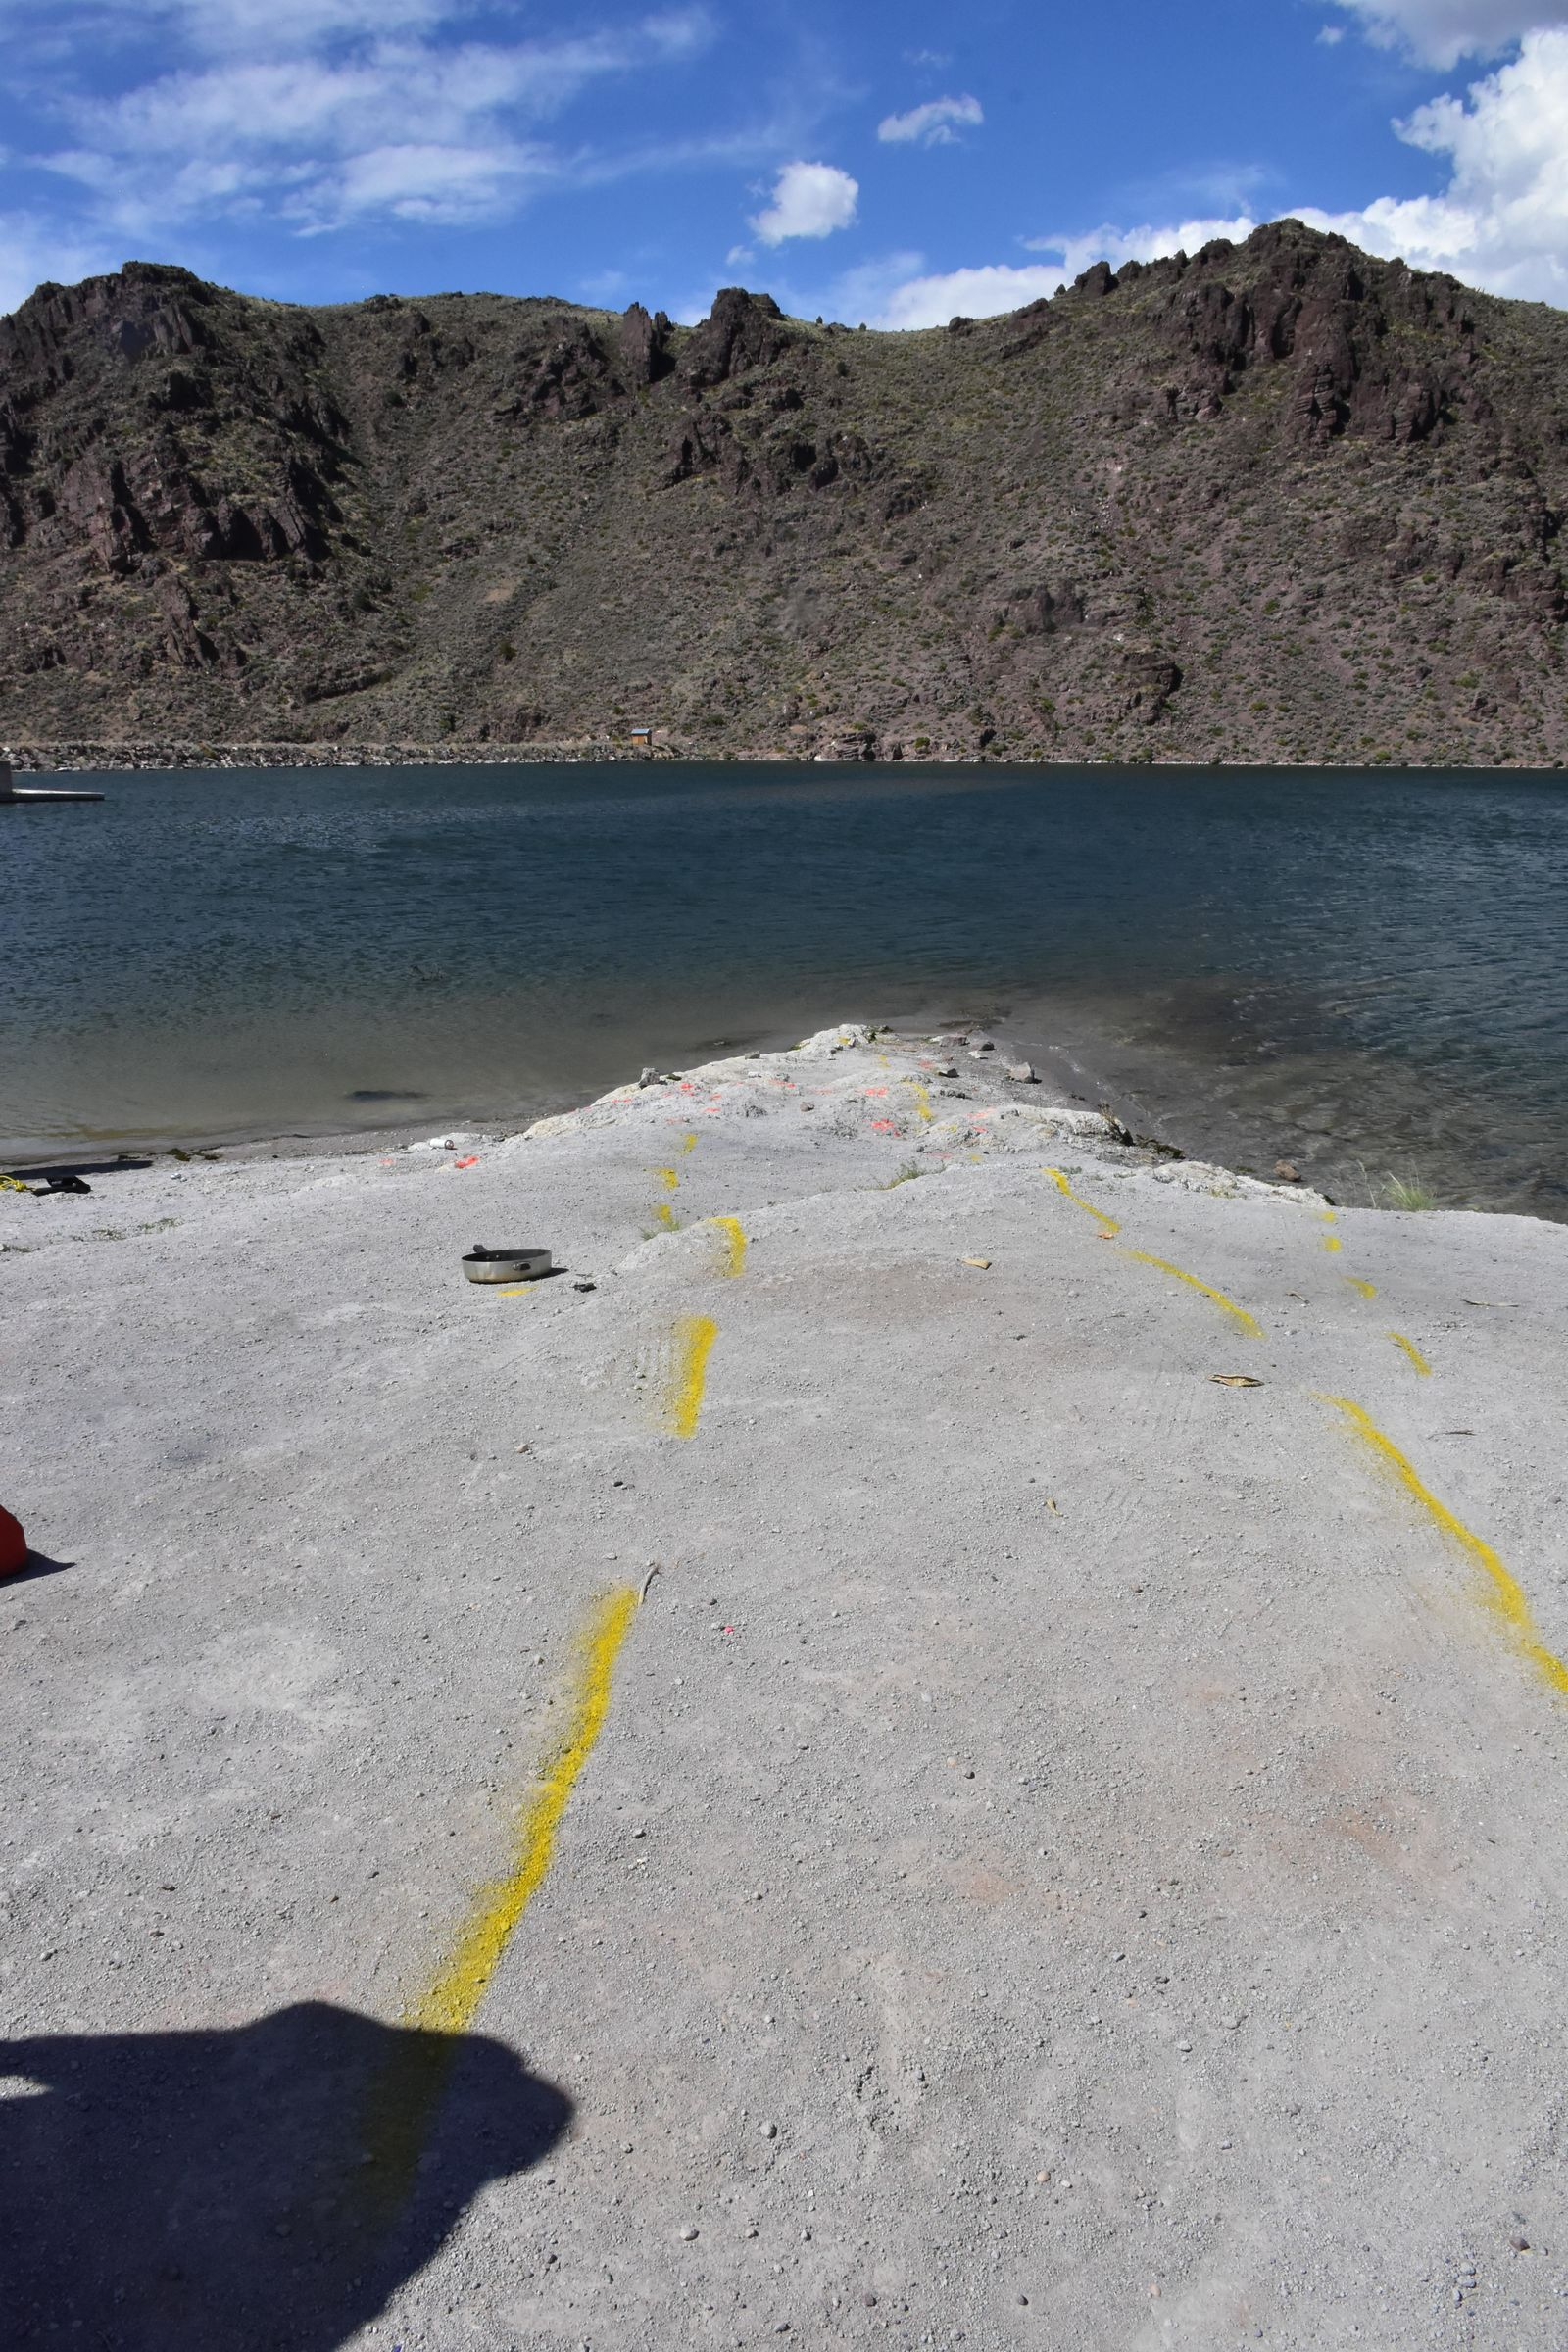 <p>A man's body was pulled from Newcastle Reservoir on Saturday morning and the Iron County Sheriff's Office believes alcohol was a factor in the death. (Photo: Iron County Sheriff's Office){&nbsp;}</p>